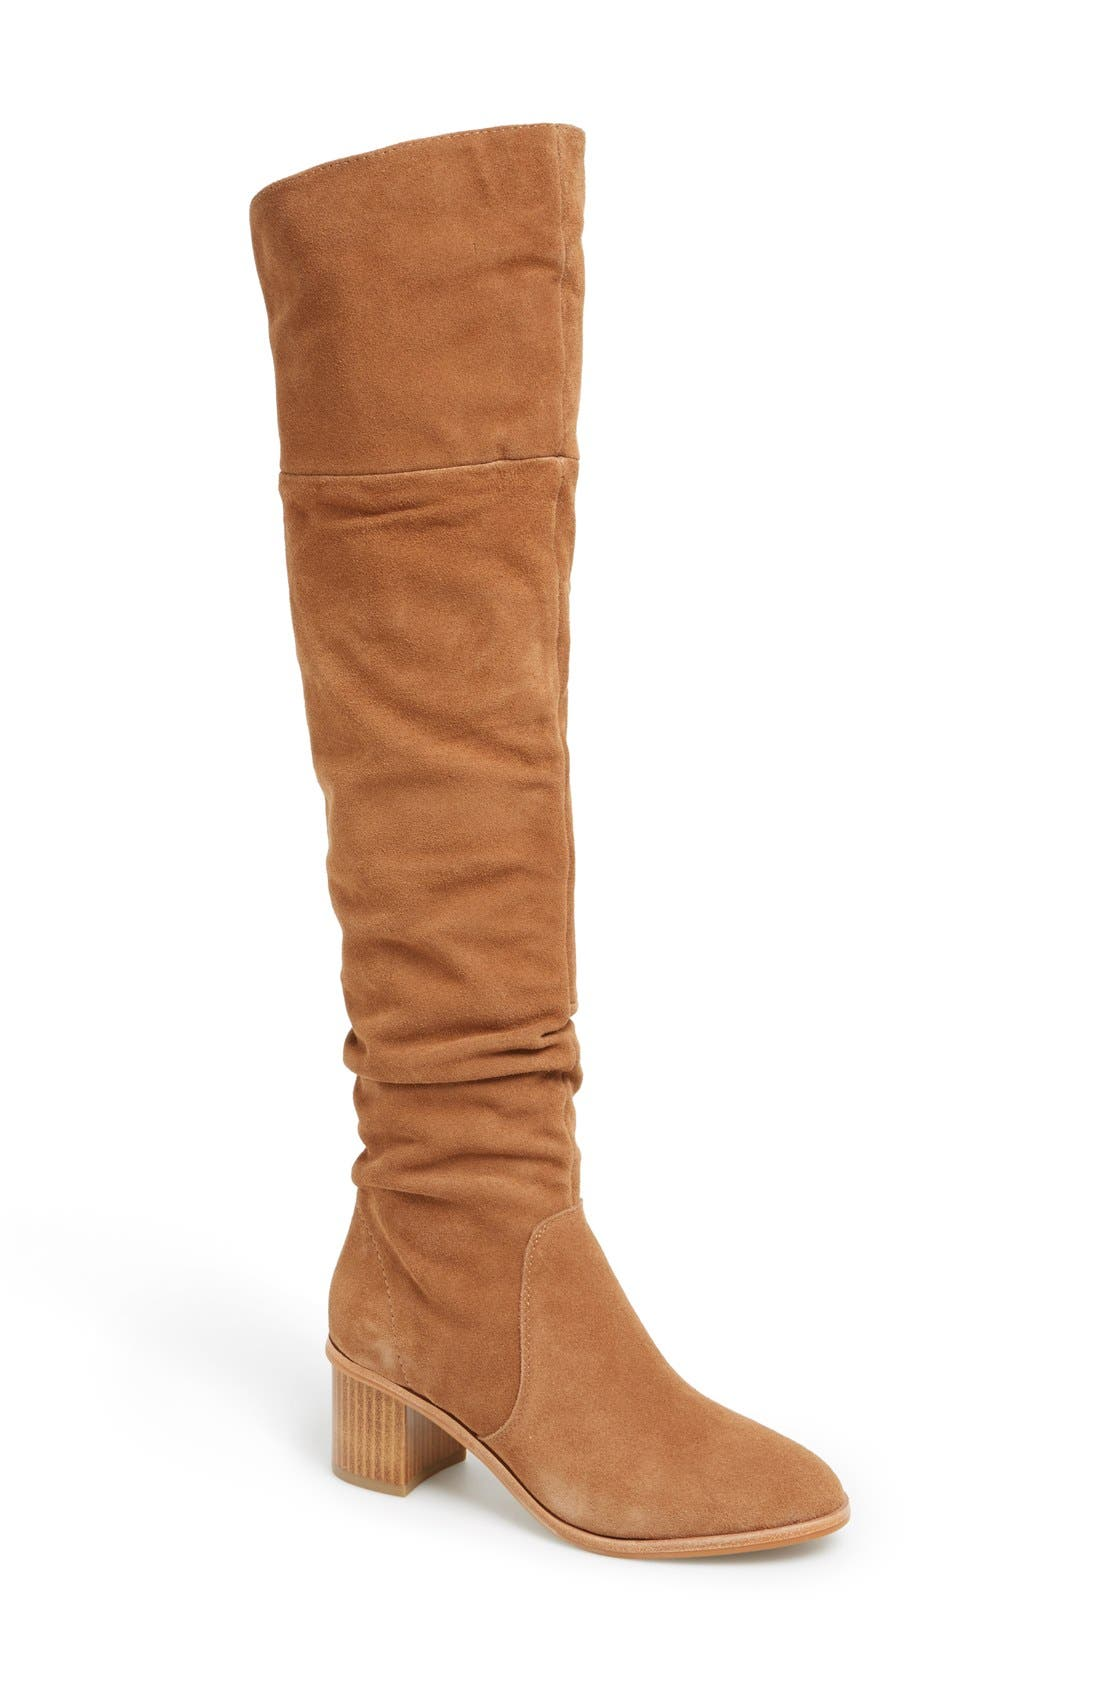 Main Image - French Connection 'Clementina' Over the Knee Boot (Women)